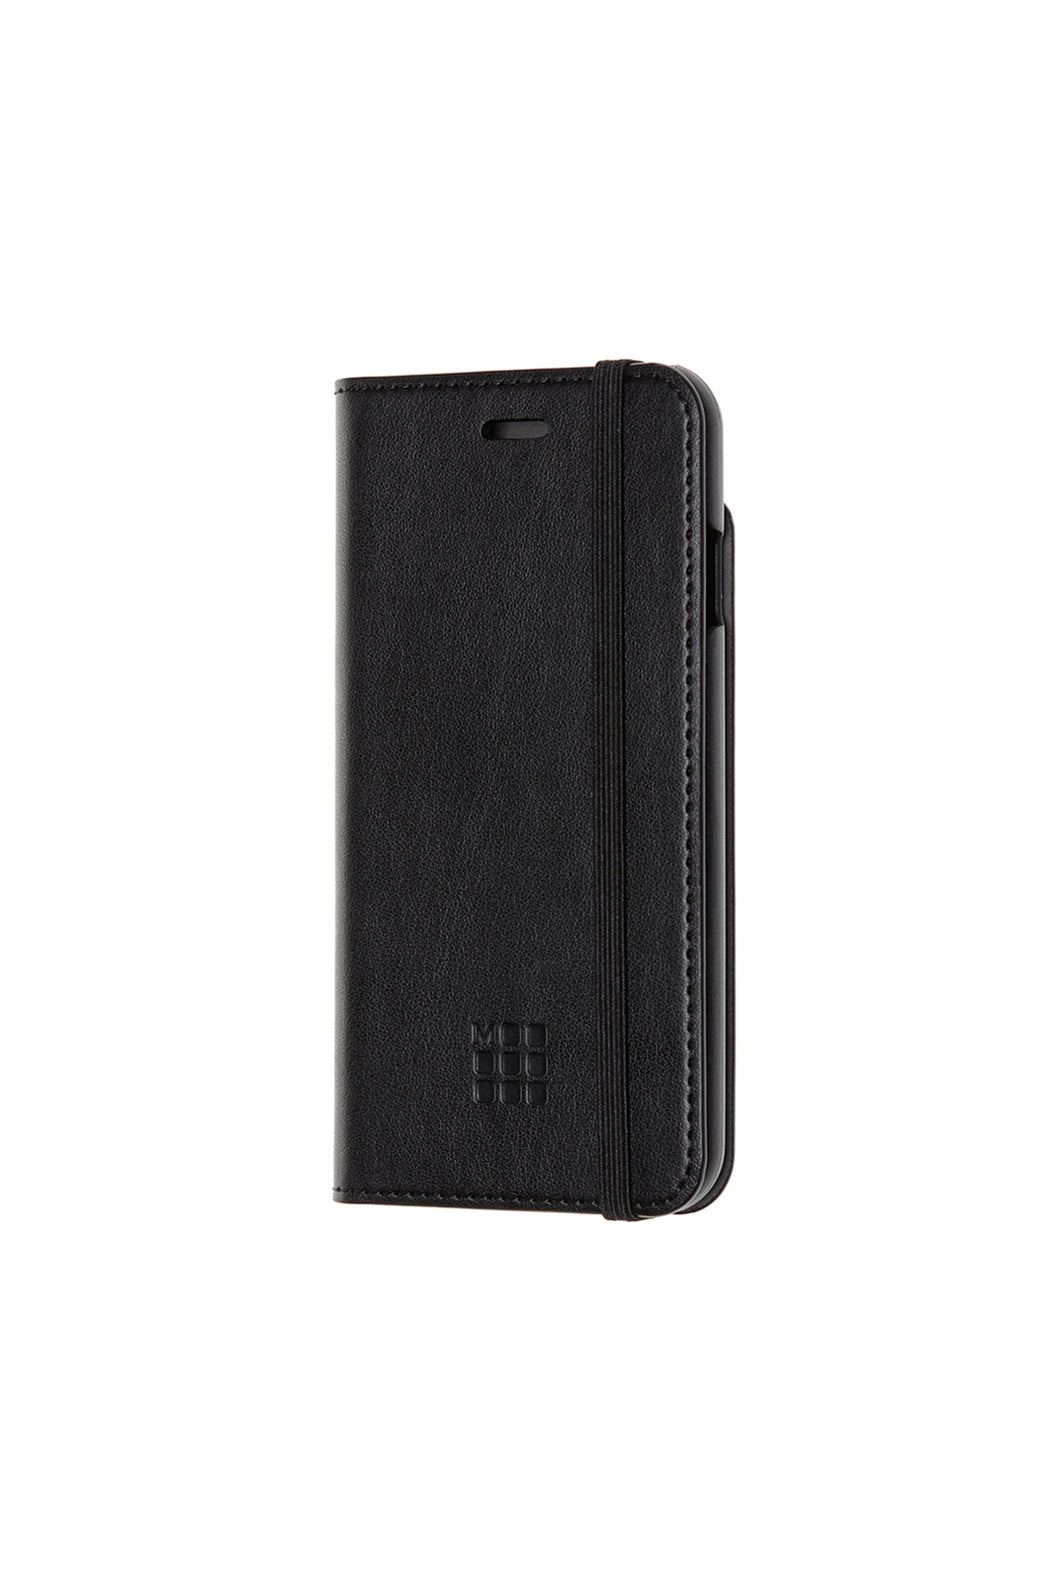 Moleskine - Reading Booktype Samsung Galaxy S9 Case - Black